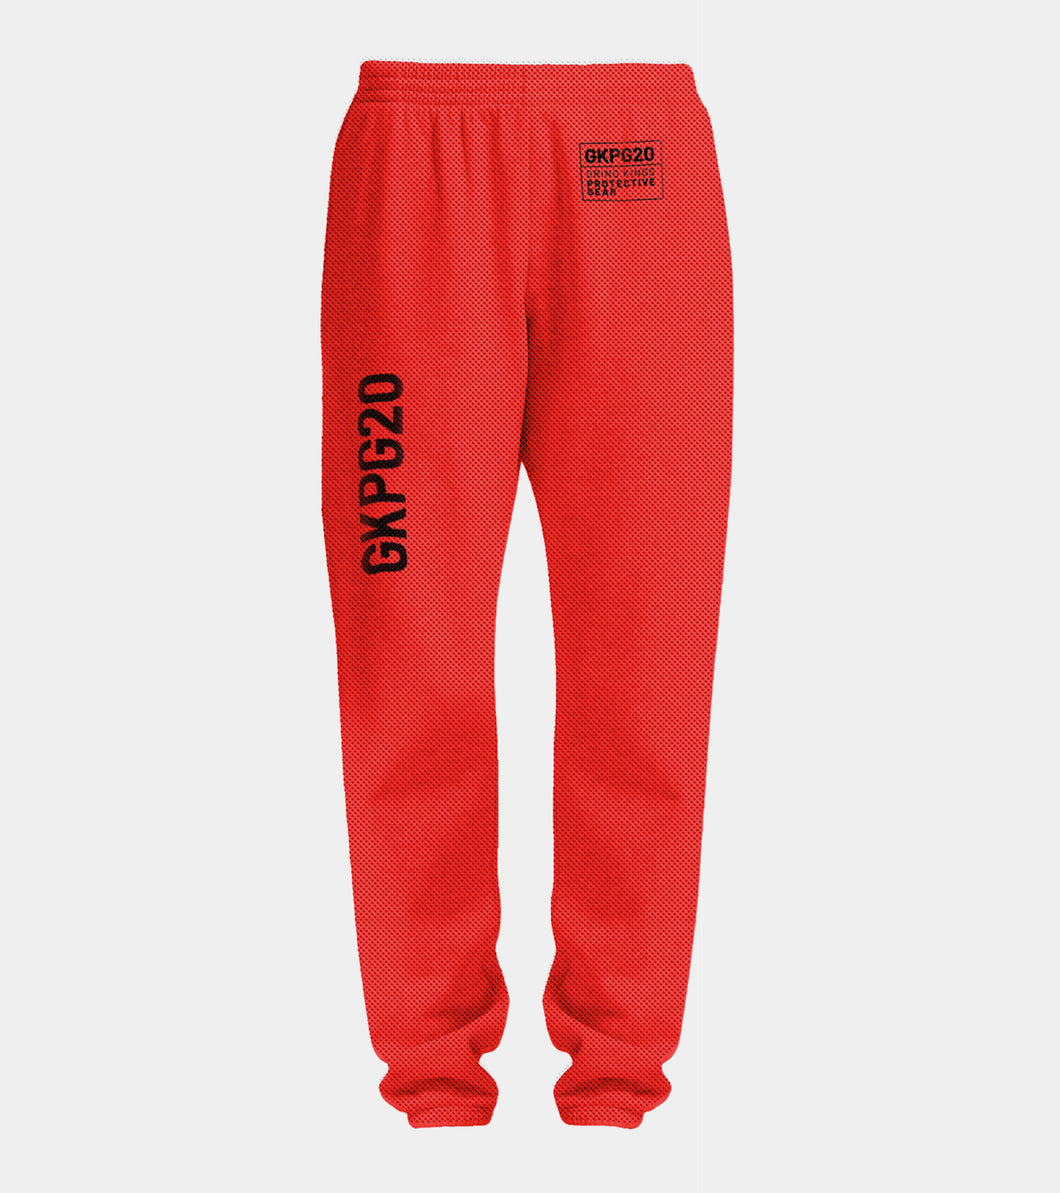 GKPG20 sweat pant - Red